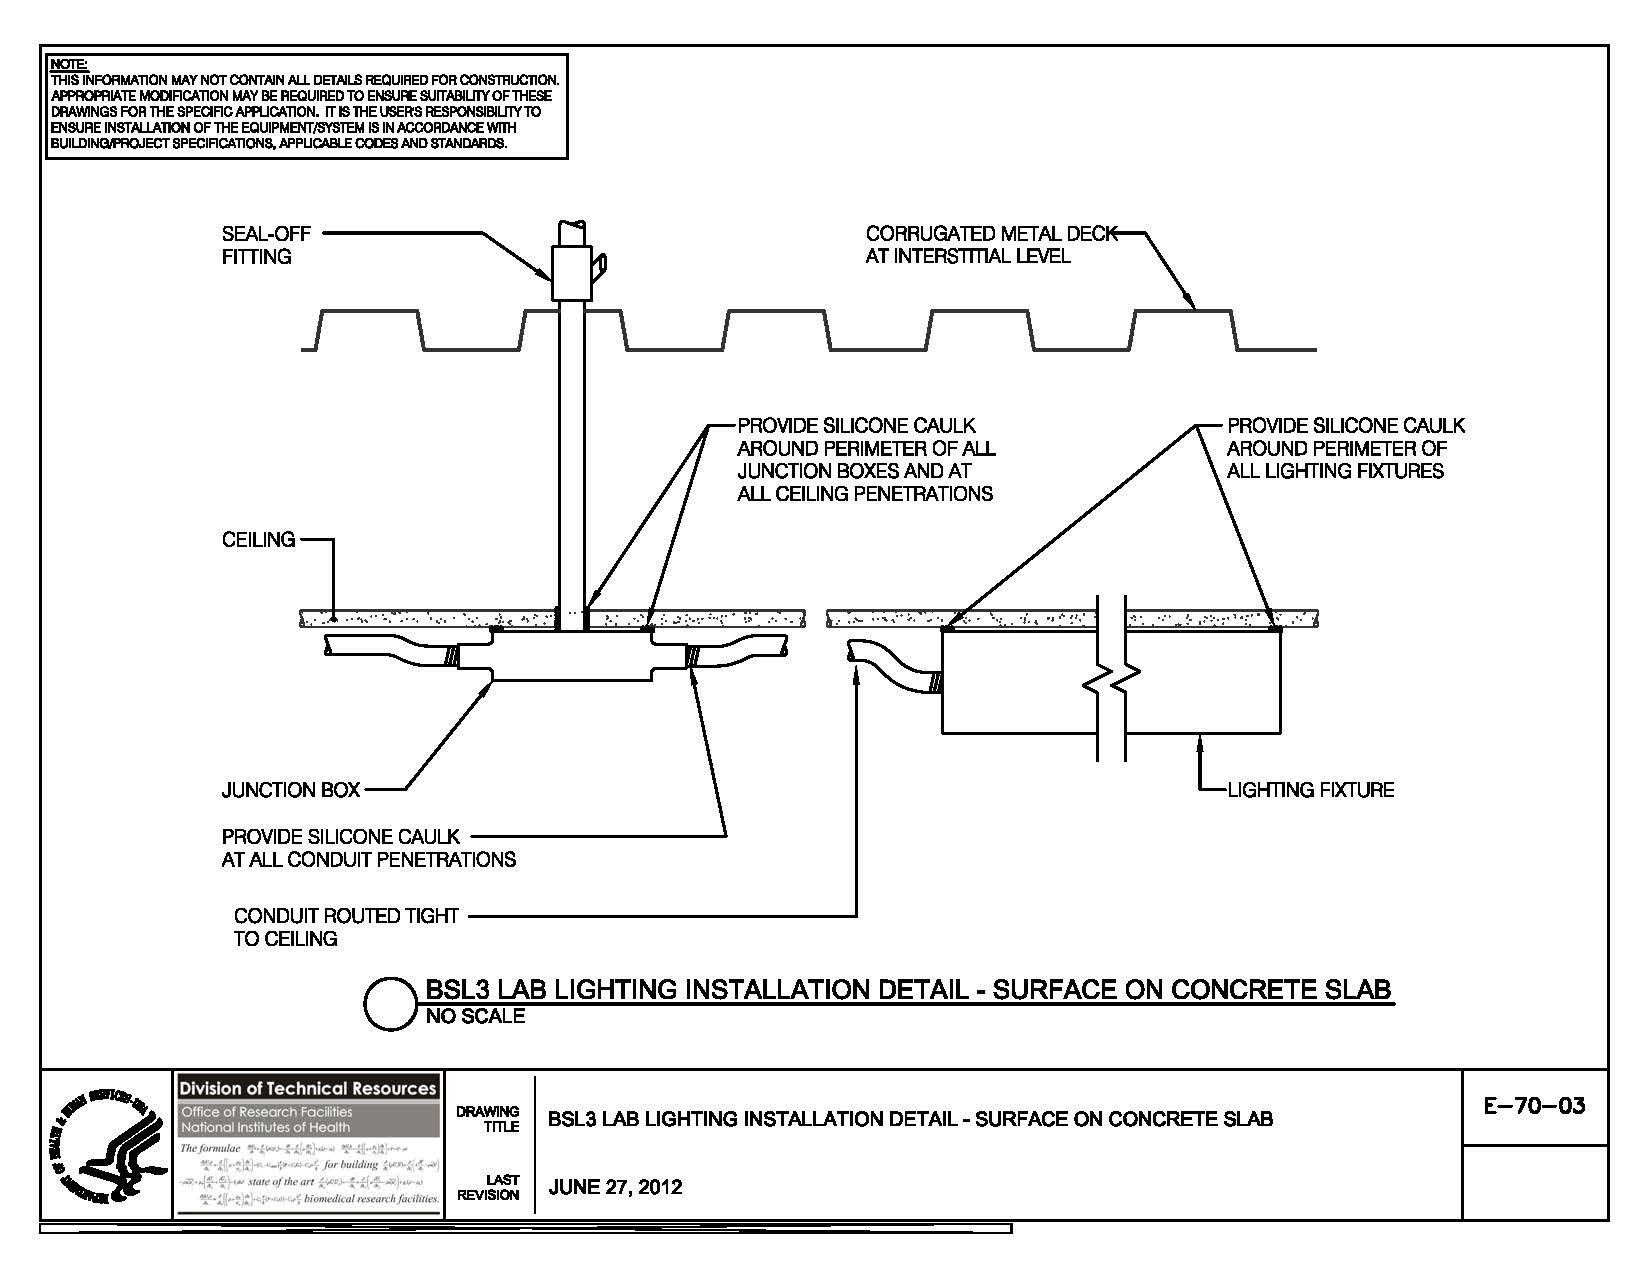 Unique Wiring Diagram Maintained Emergency Lighting  Diagram  Diagramsample  Diagramformat